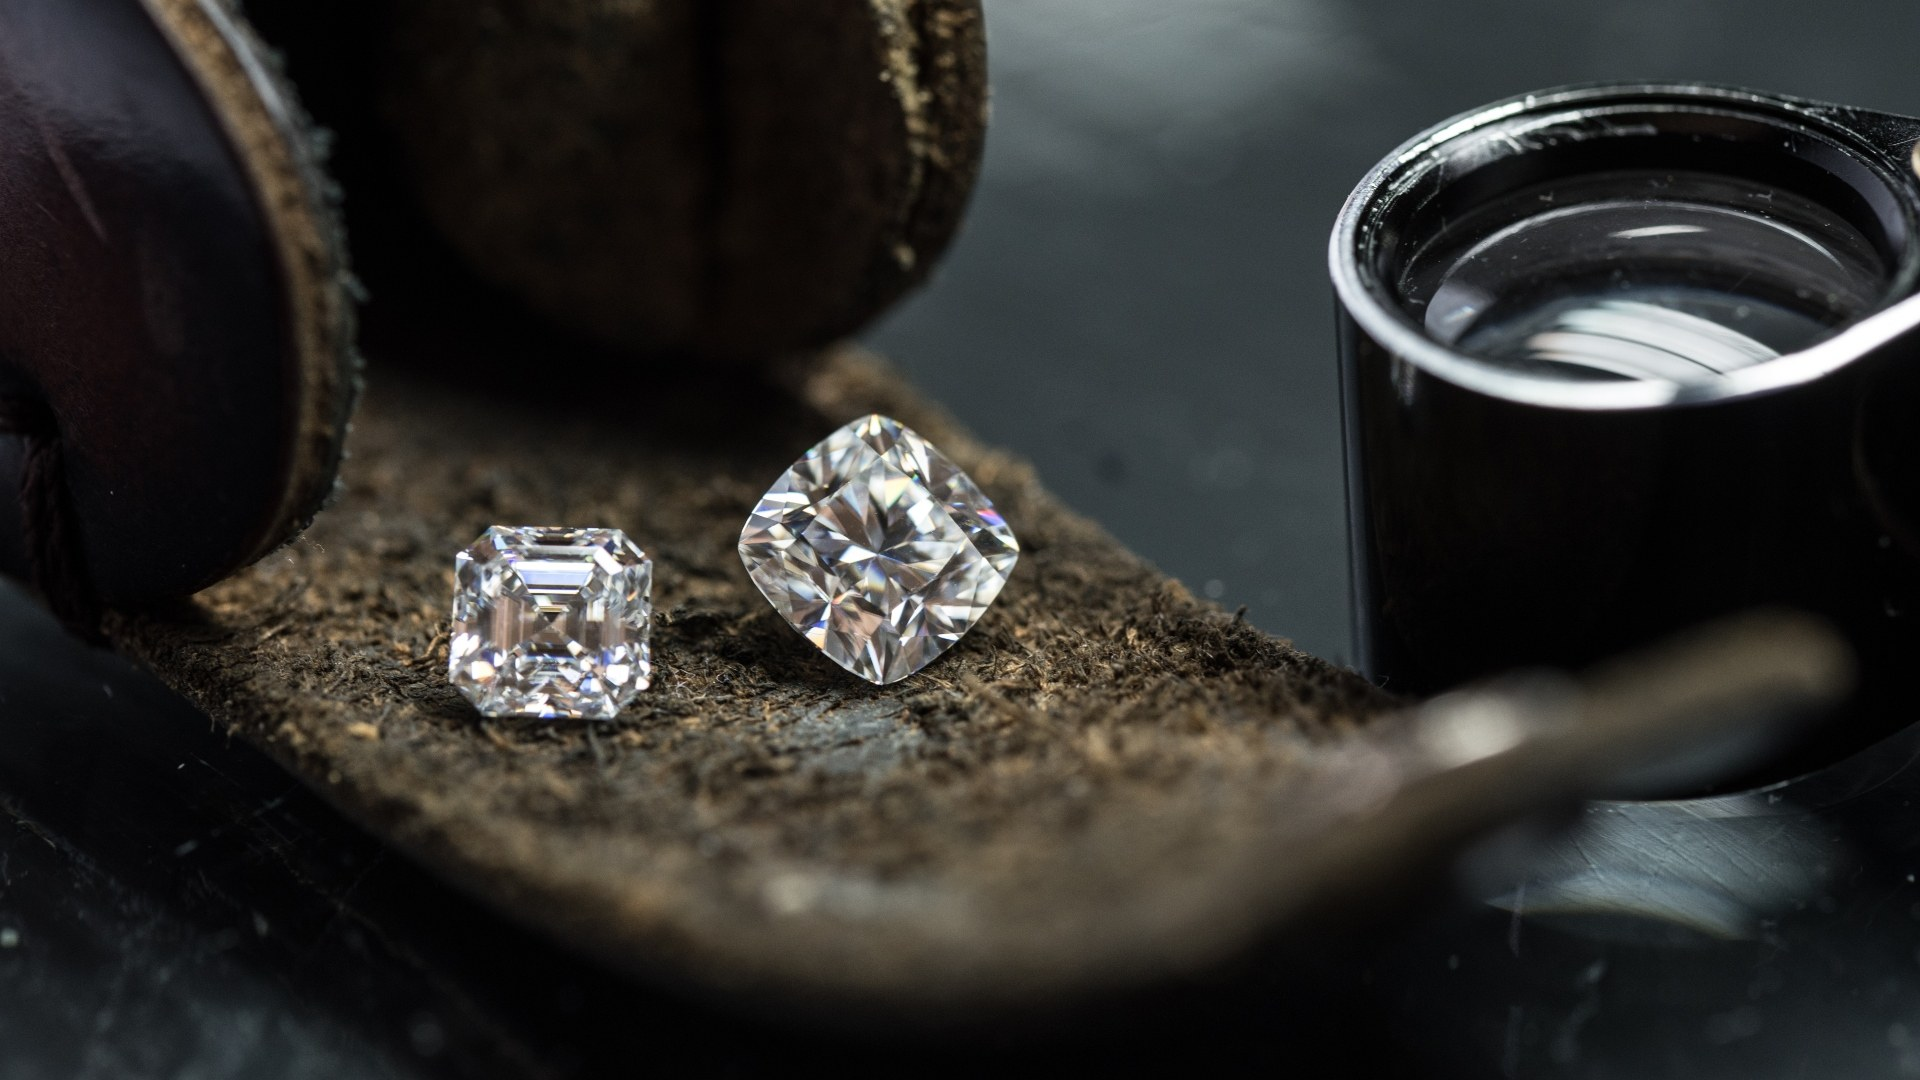 WD Lab Grown Diamonds has received an equity investment from Huron Capital Partners, LLC